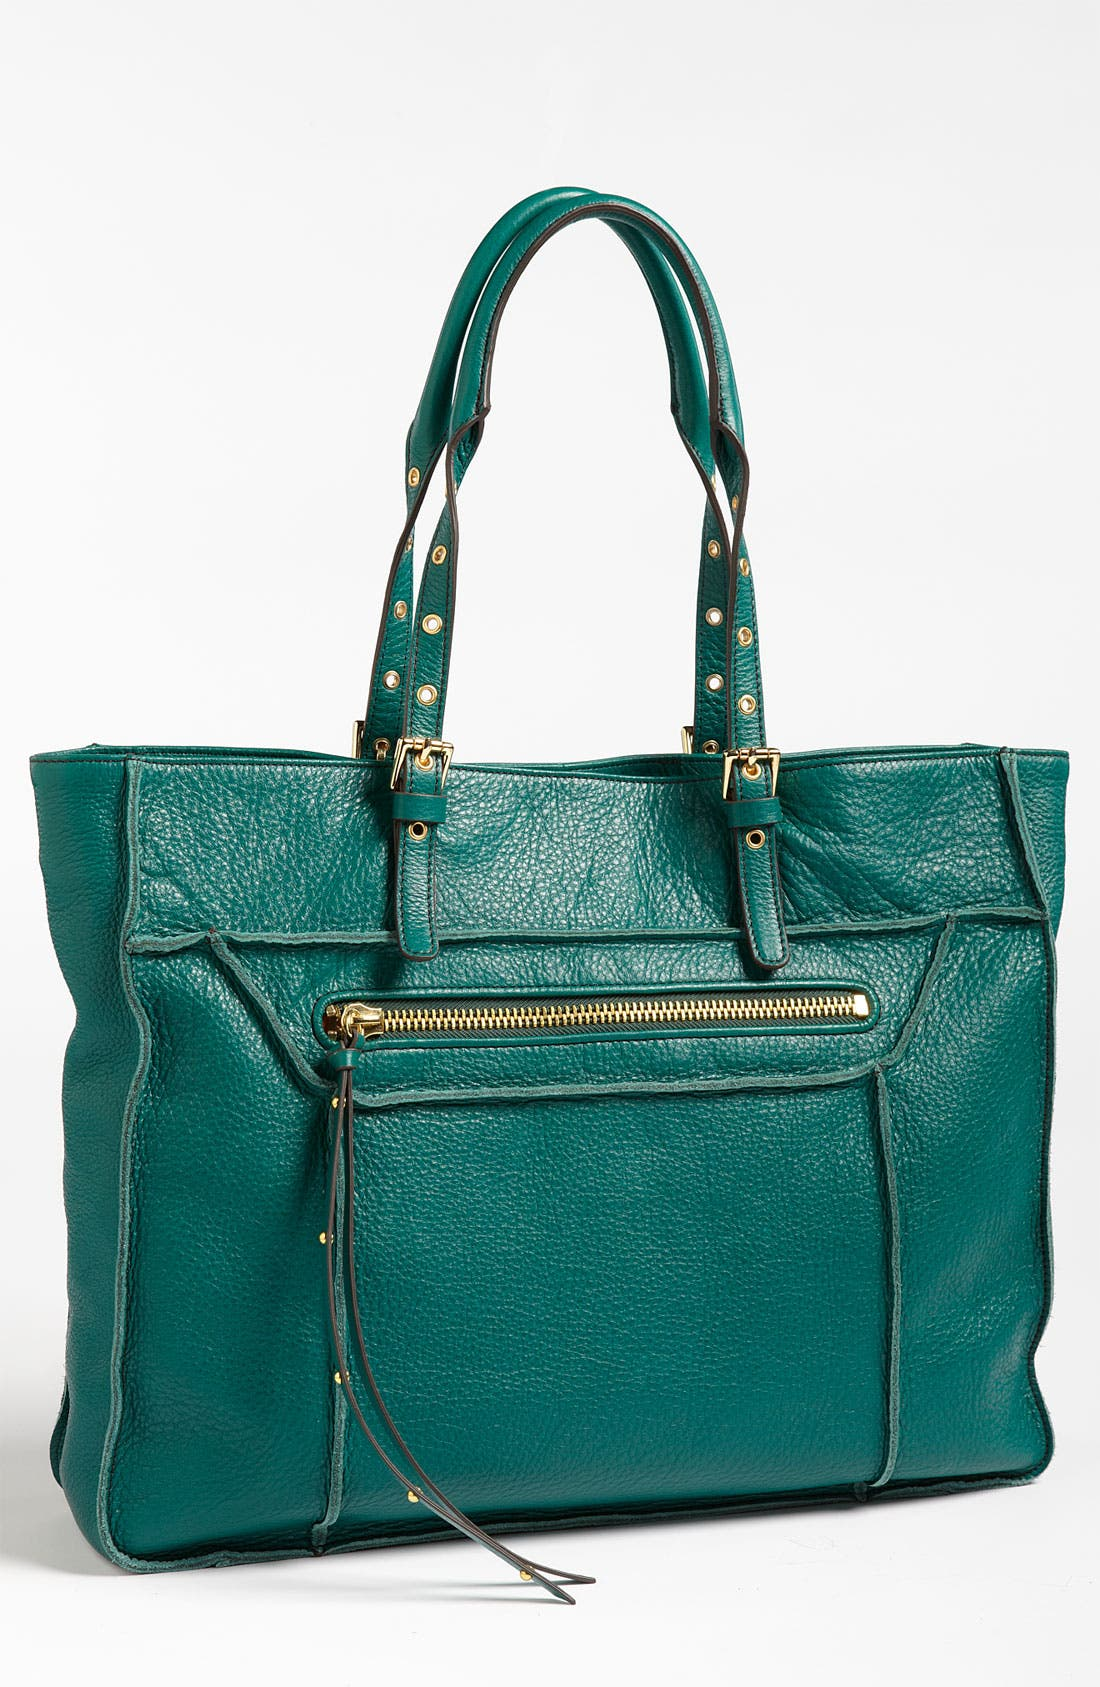 Main Image - Steven by Steve Madden 'France' Calfskin Leather Tote